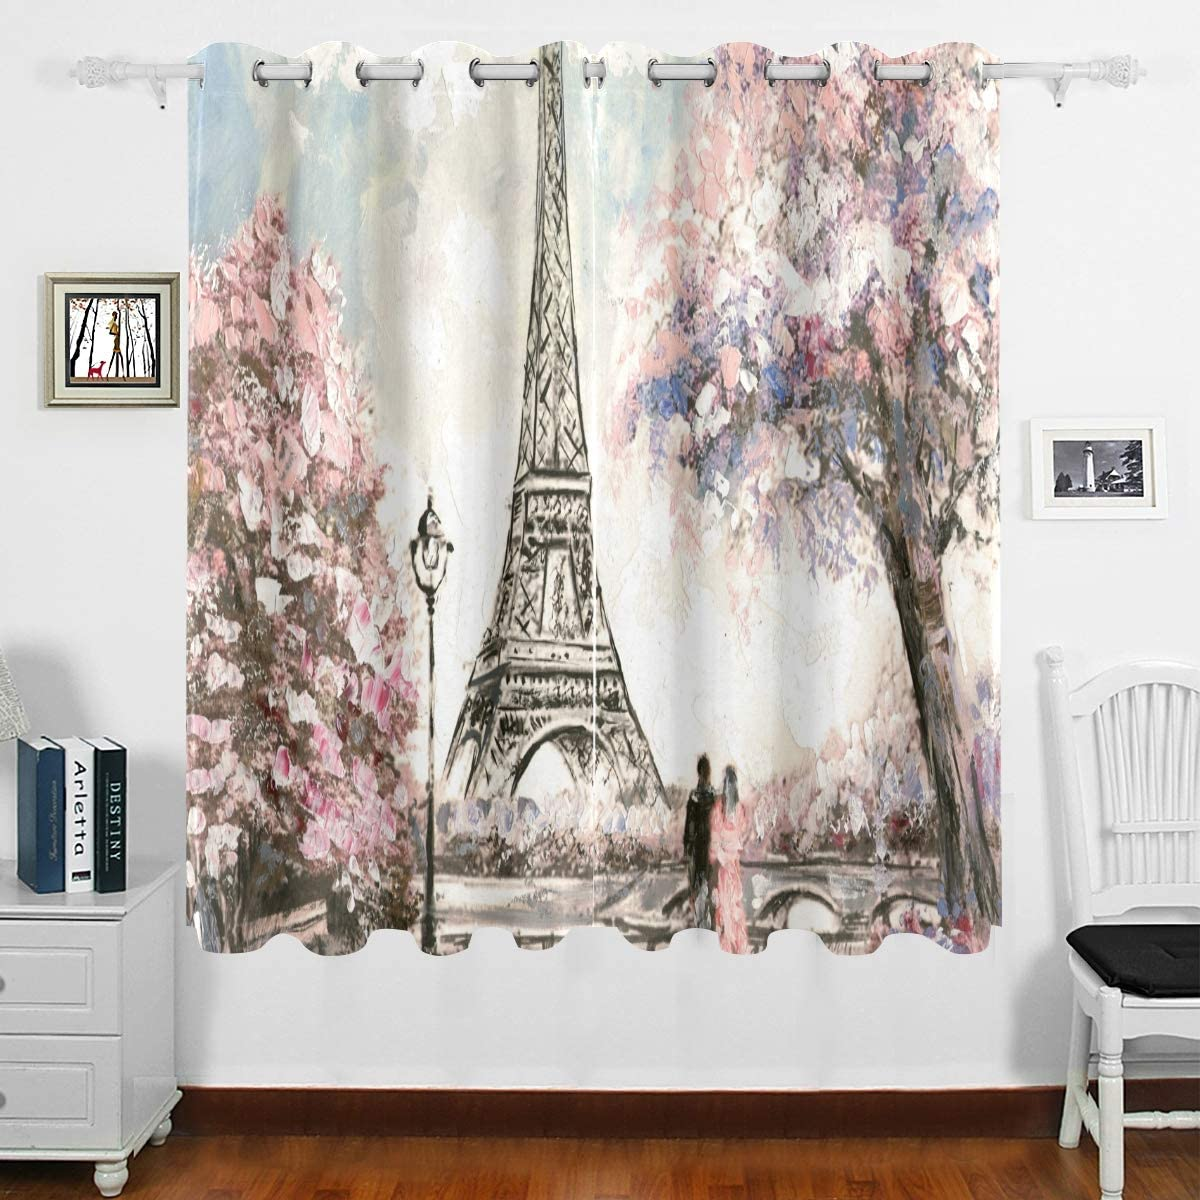 DOMIKING Bedroom Window Blackout Curtain - Street View of Paris Landscape Thermal Insulated Curtain Grommet Curtain Drapes Home Decor for Bedroom Living Room(63x55inch)